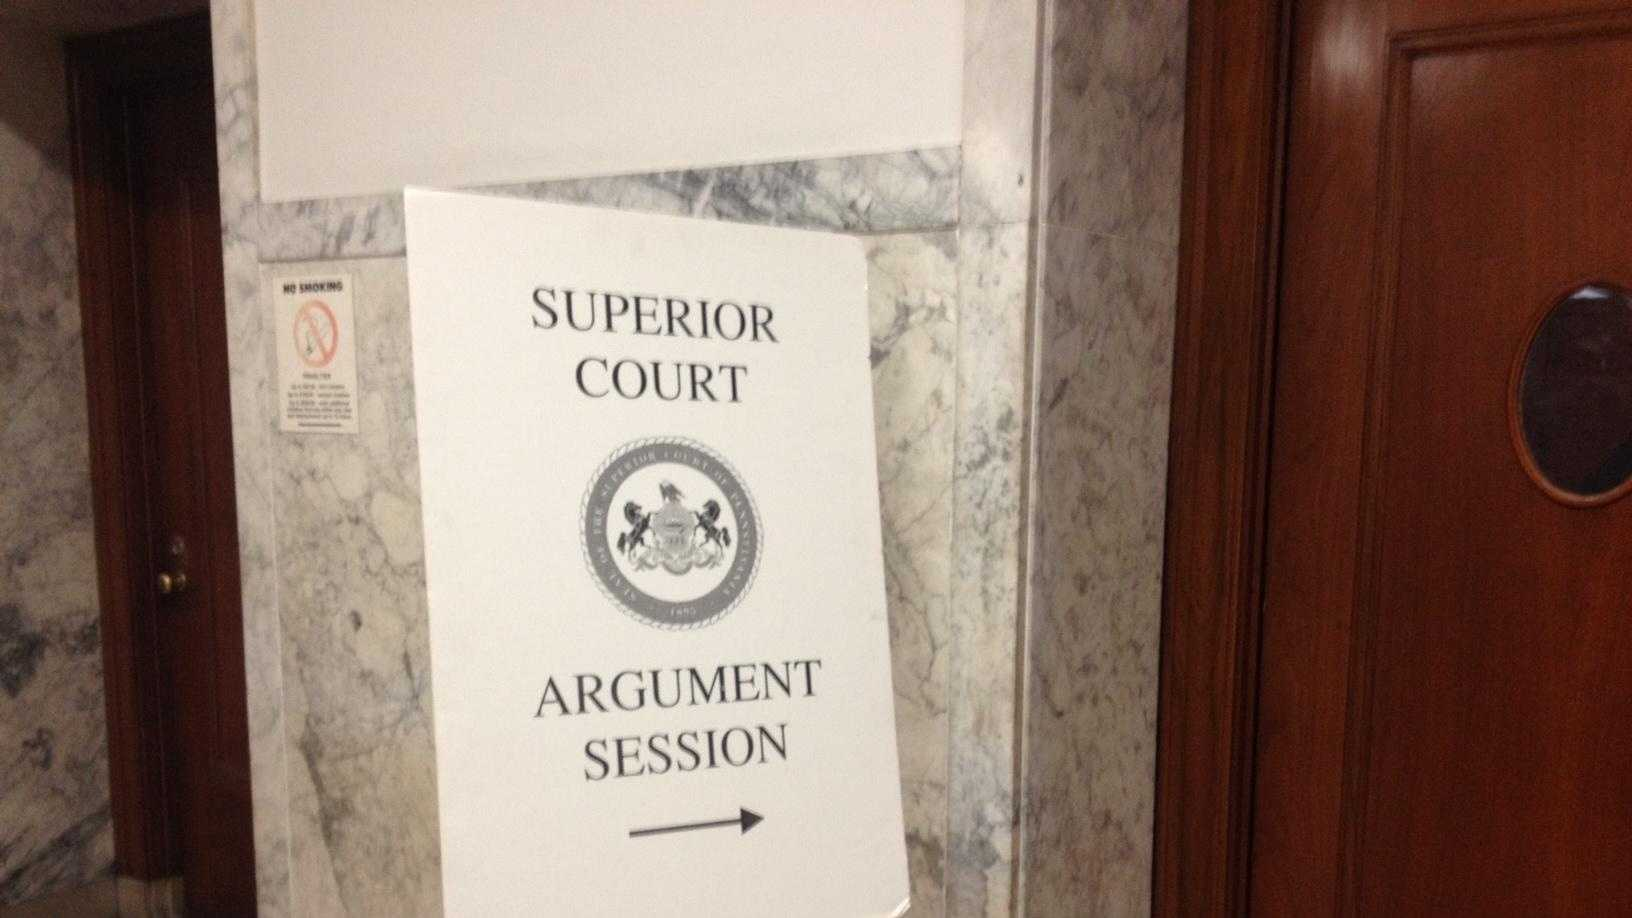 Superior Court (photo.JPG) - 30784006